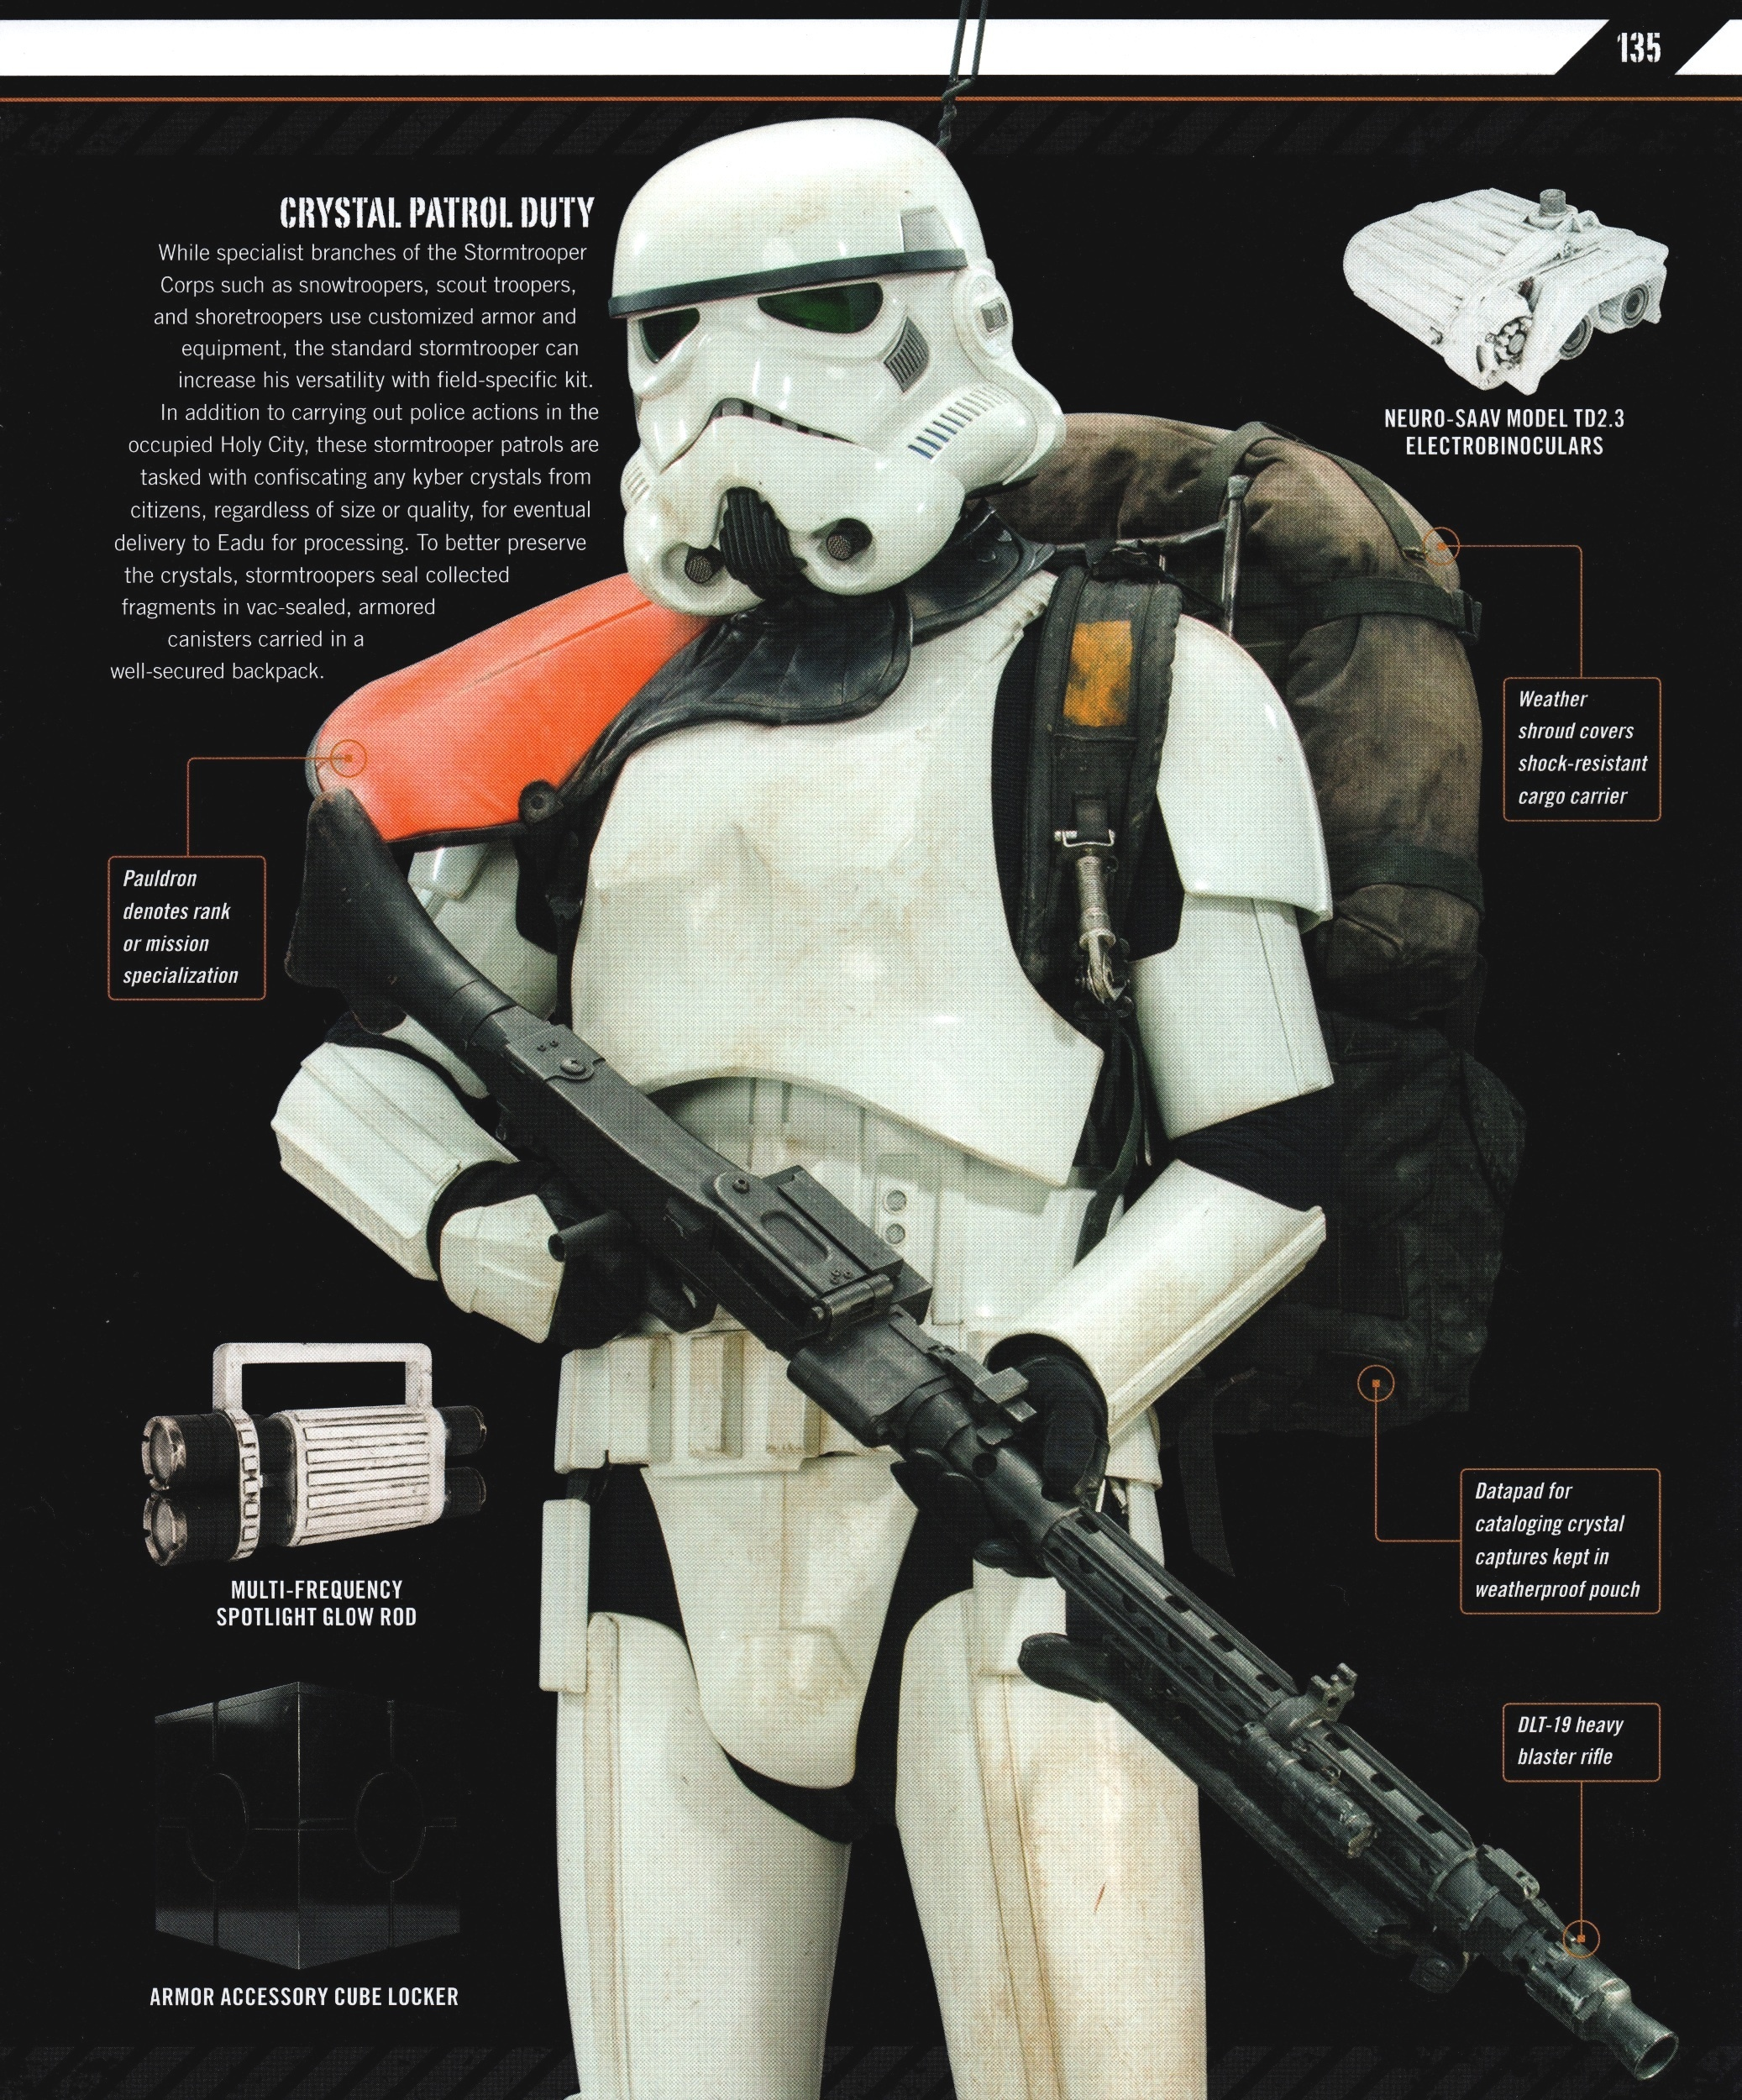 Rogue One Ultimate Visual Guide (b0bafett_Empire) p135